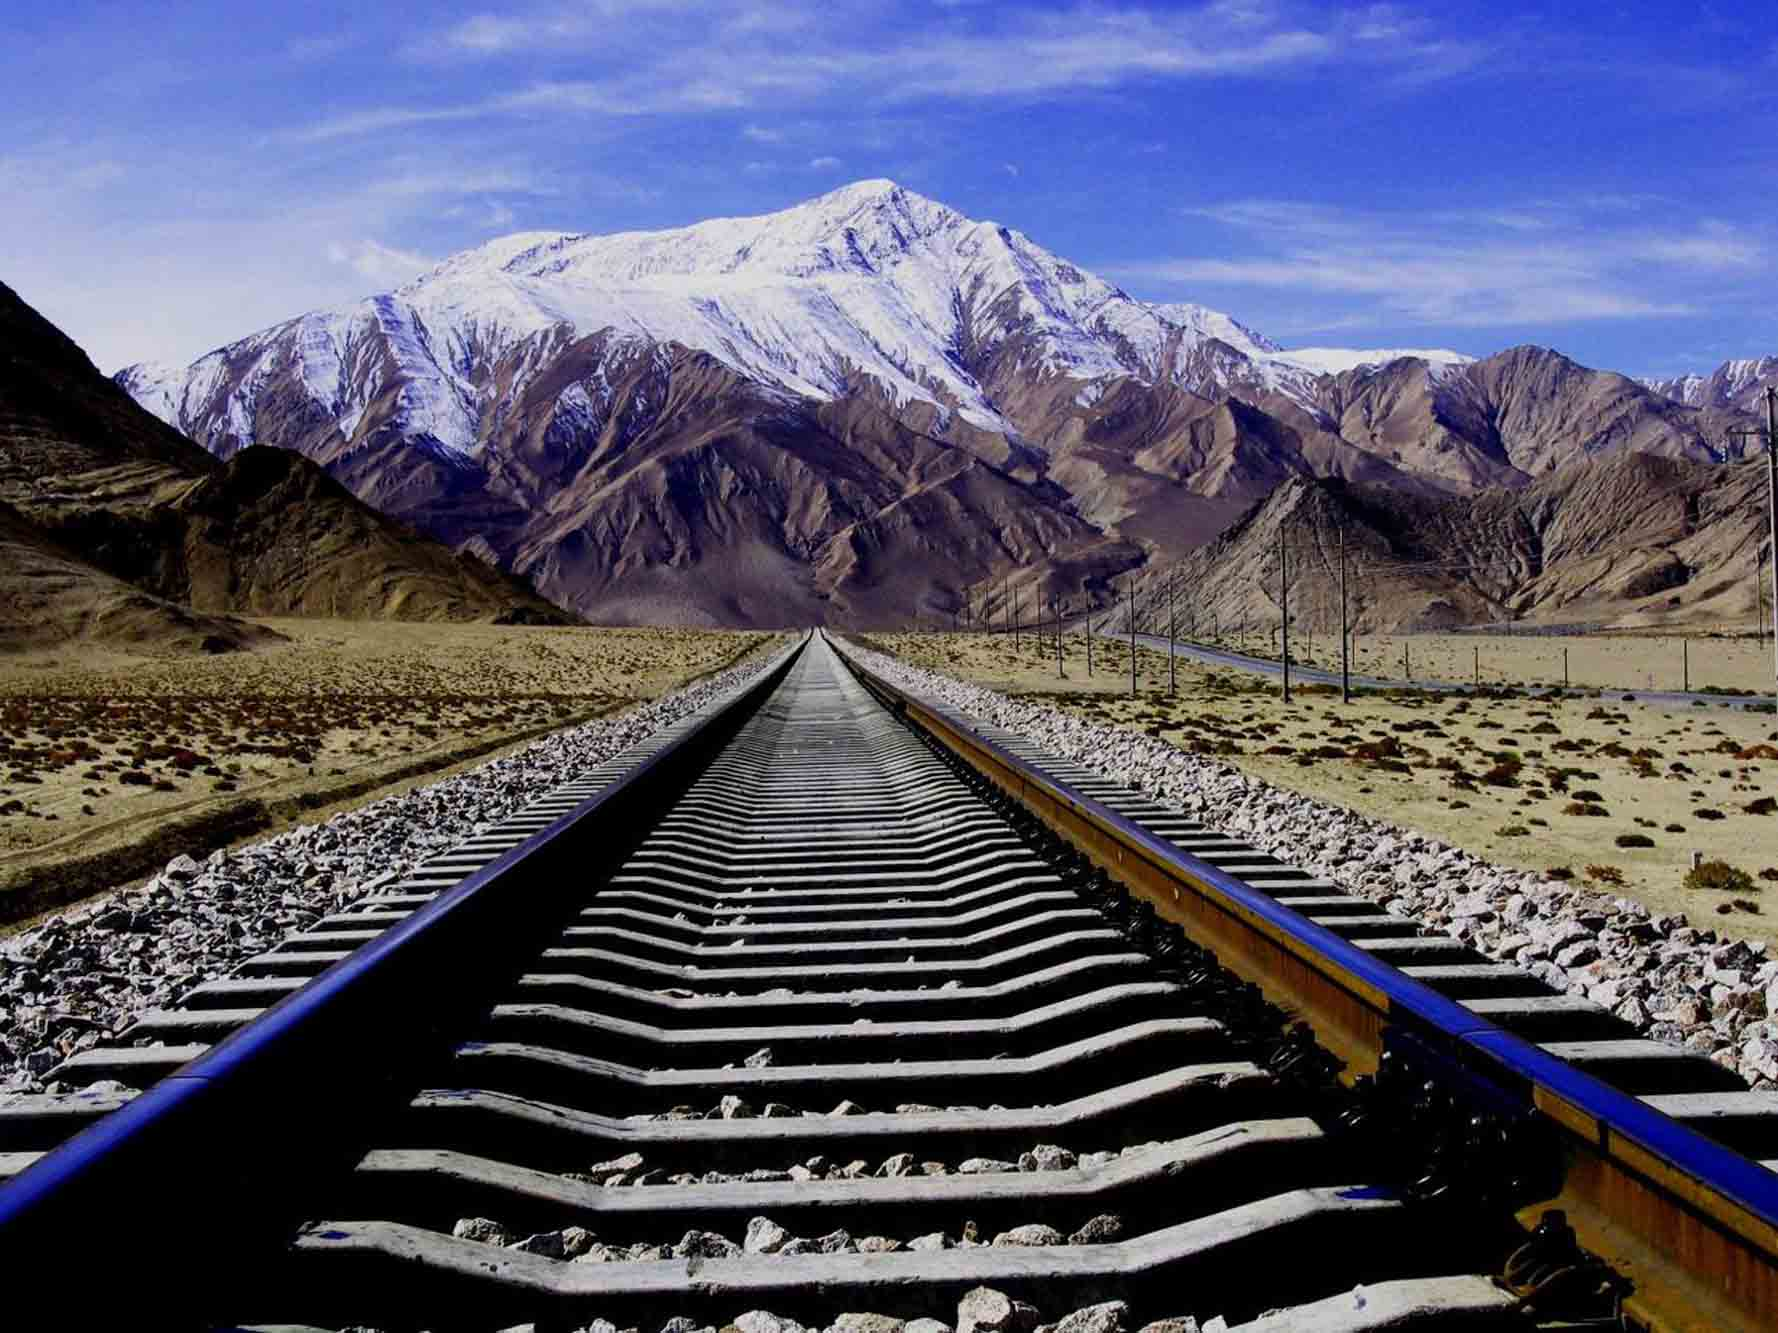 Lhasa-Shigatse railway set for Sep'14 opening